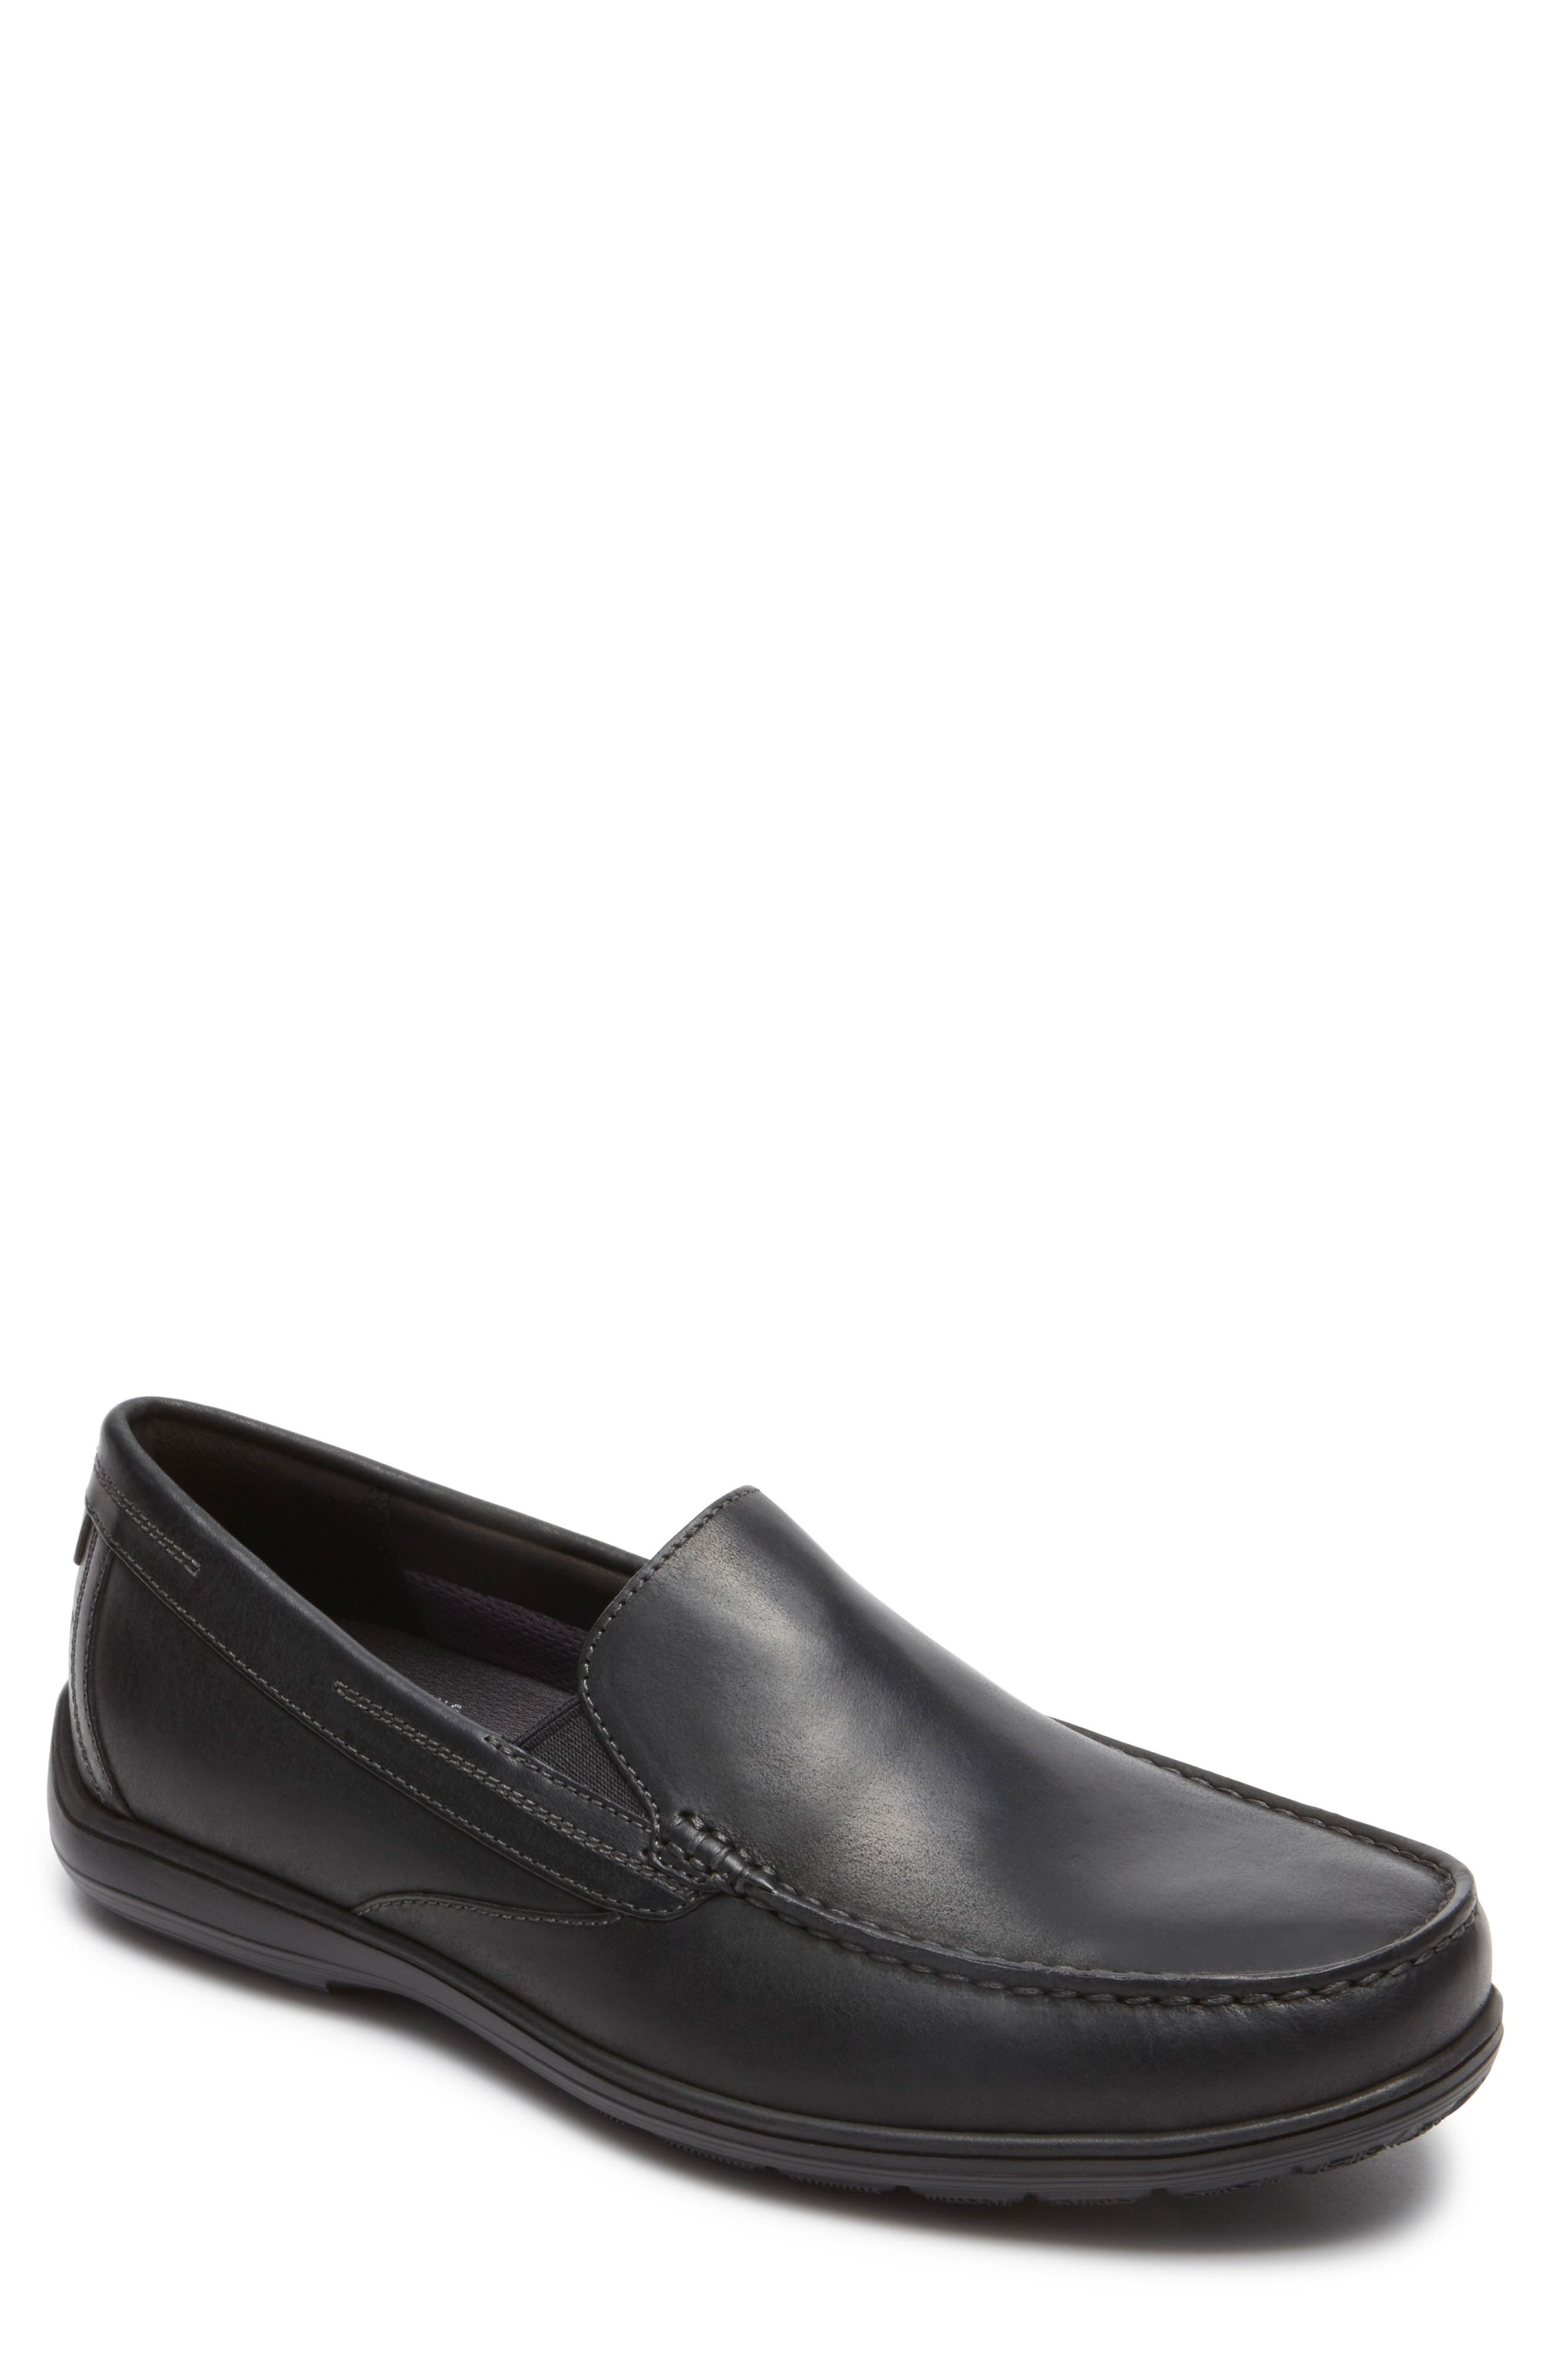 Total Motion Loafer,                             Main thumbnail 1, color,